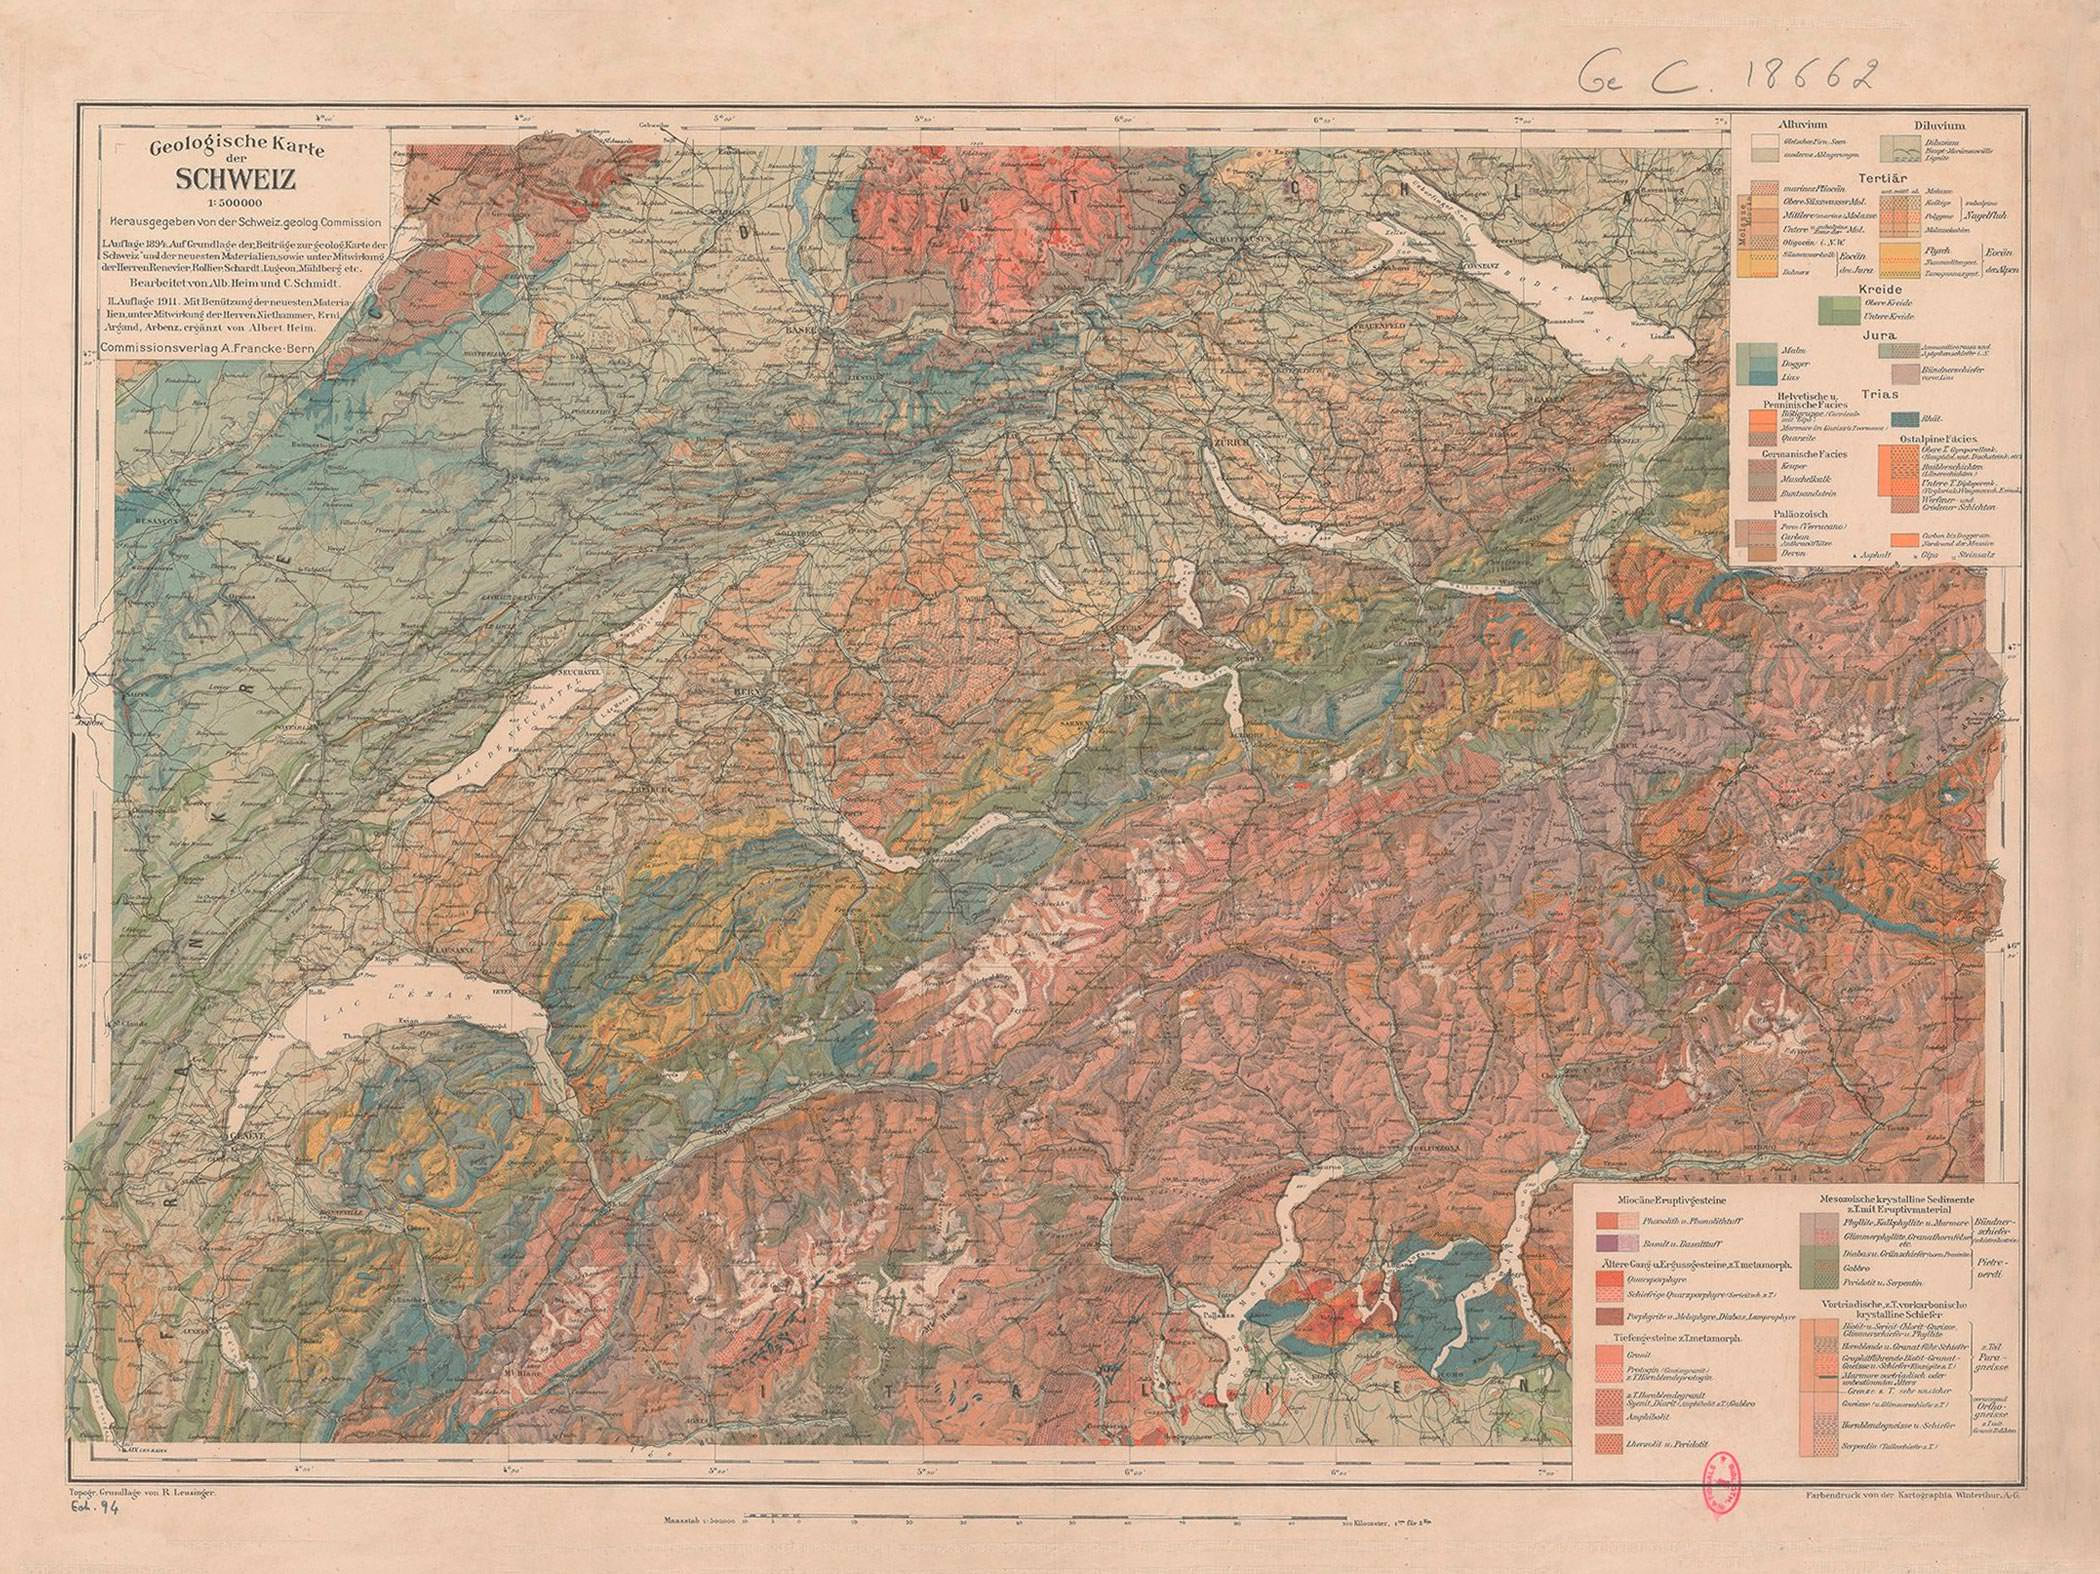 Sean Conway, Cartographe, Carte 3D, Mapmaking, Ortho-Imaging, Vintage Maps